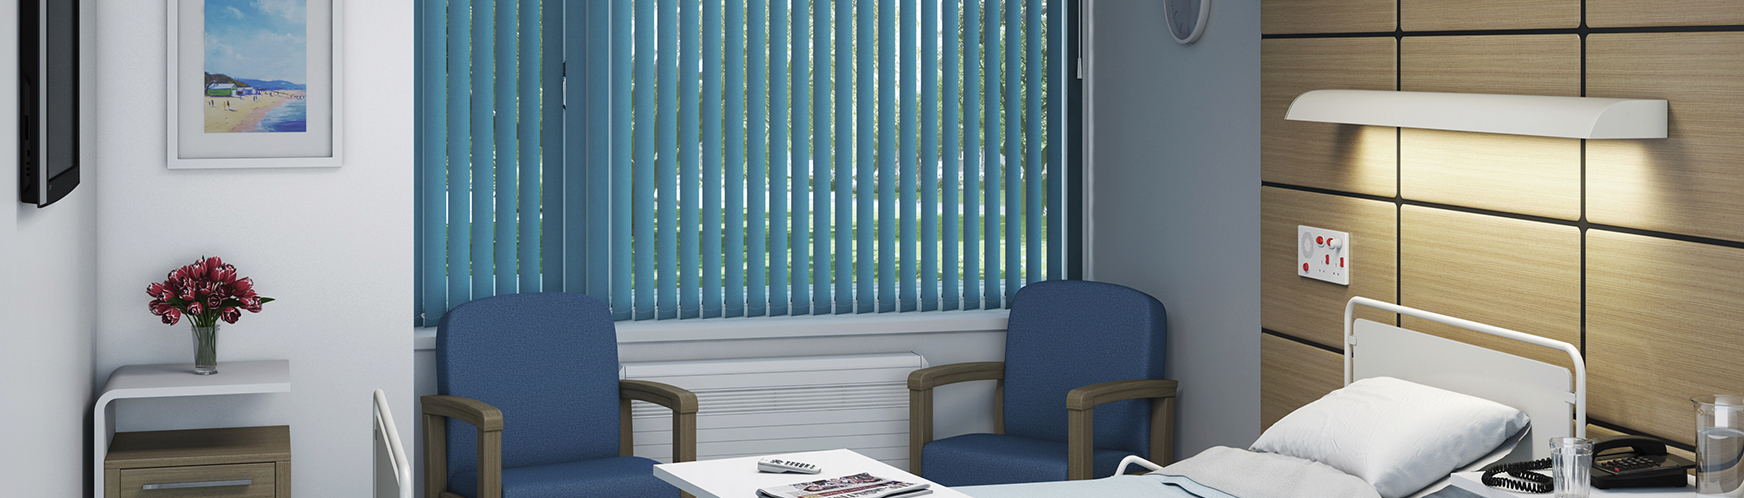 Blinds for hospitals,dentists and surgeries